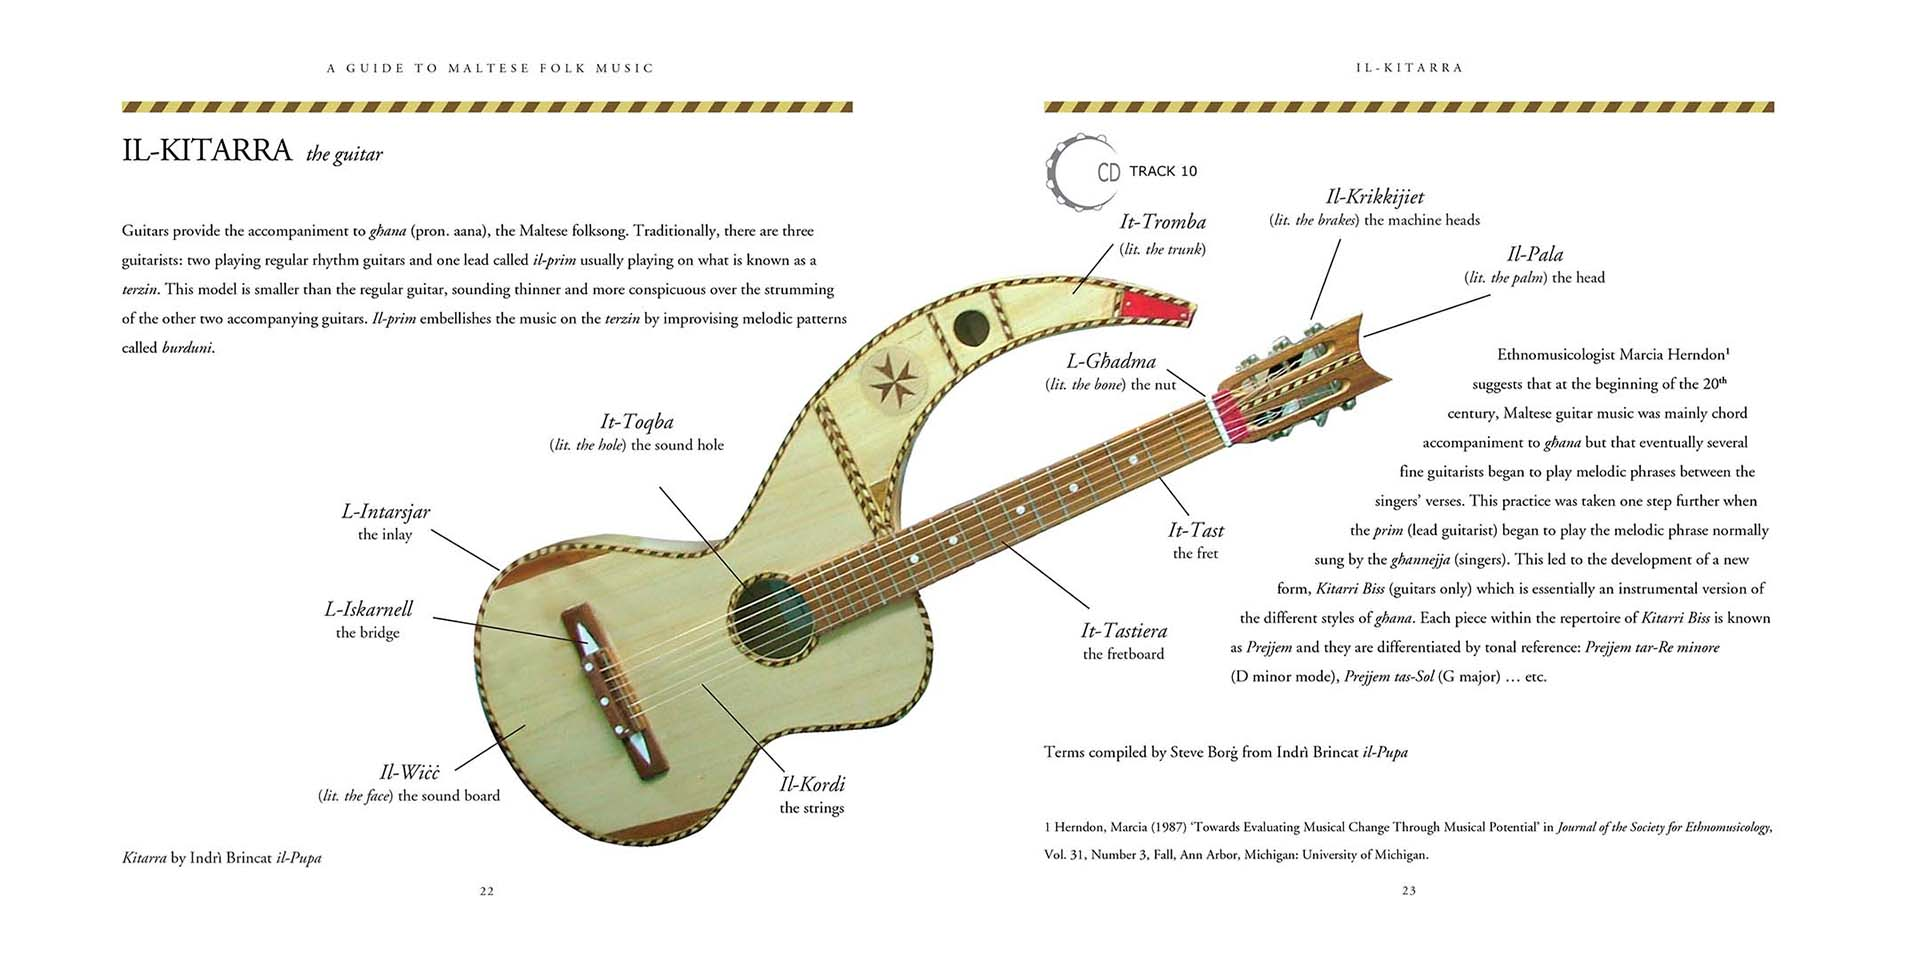 A Guide to Maltese Folk Music - Soundscapes